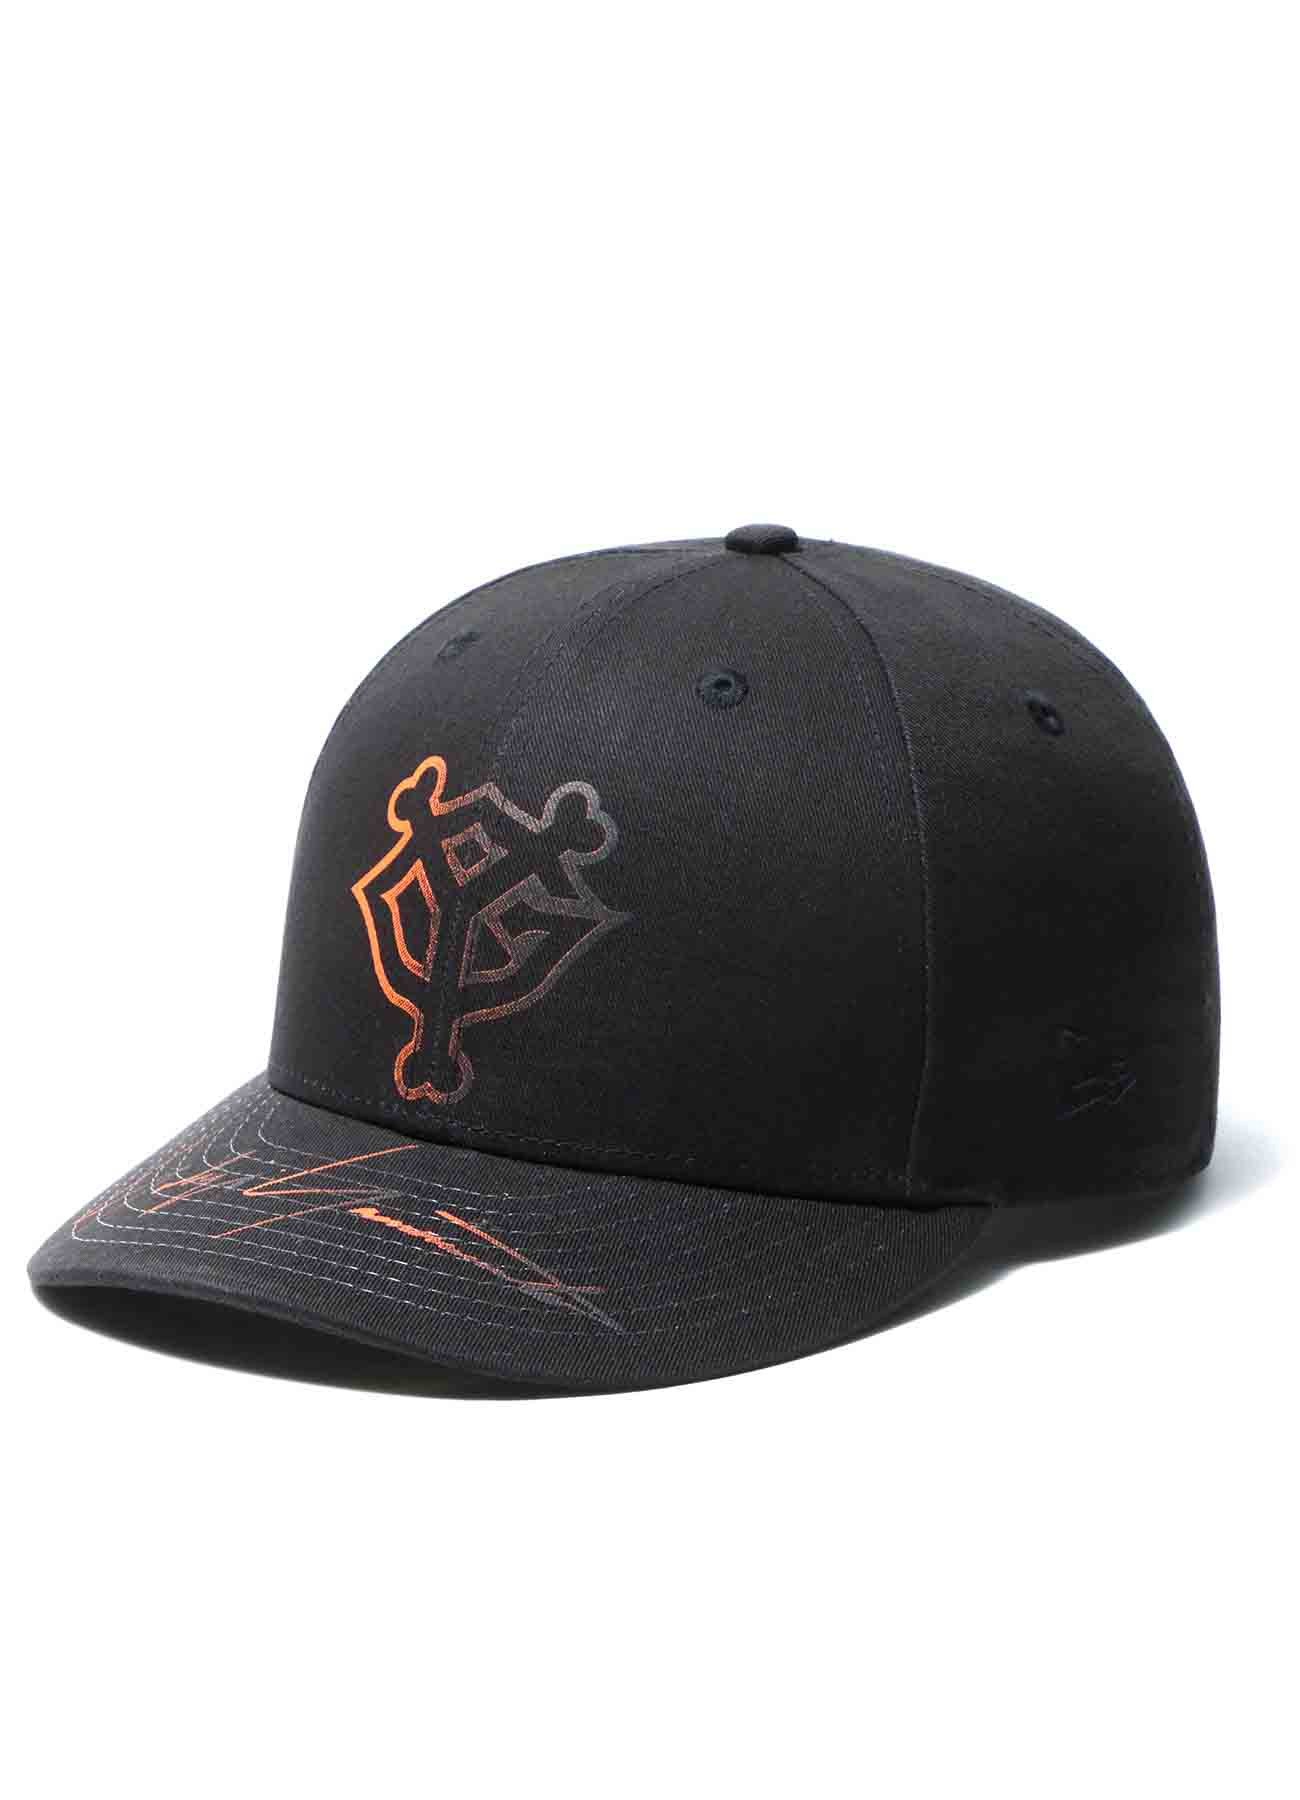 Yohji Yamamoto × Yomiuri Giants × New Era Low Profile 59FIFTY Cotton Black Orange